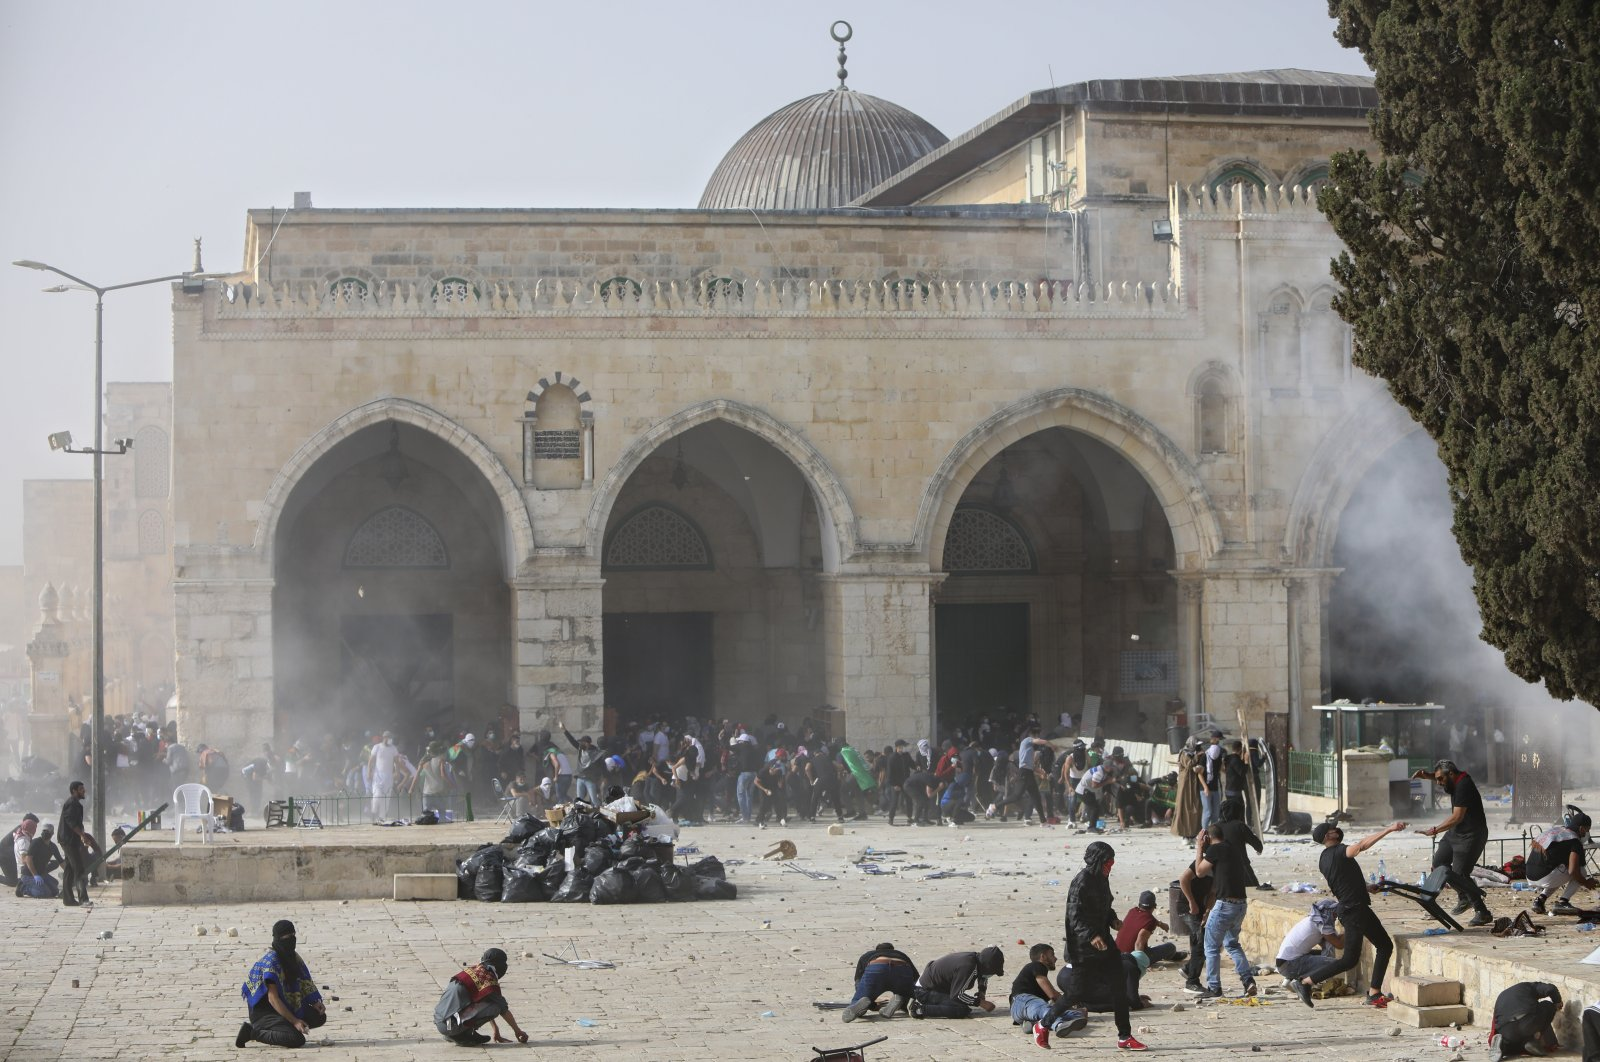 Palestinians clash with Israeli security forces at the Al-Aqsa Mosque complex in East Jerusalem's Old City, occupied Palestine, May 10, 2021. (AP Photo)